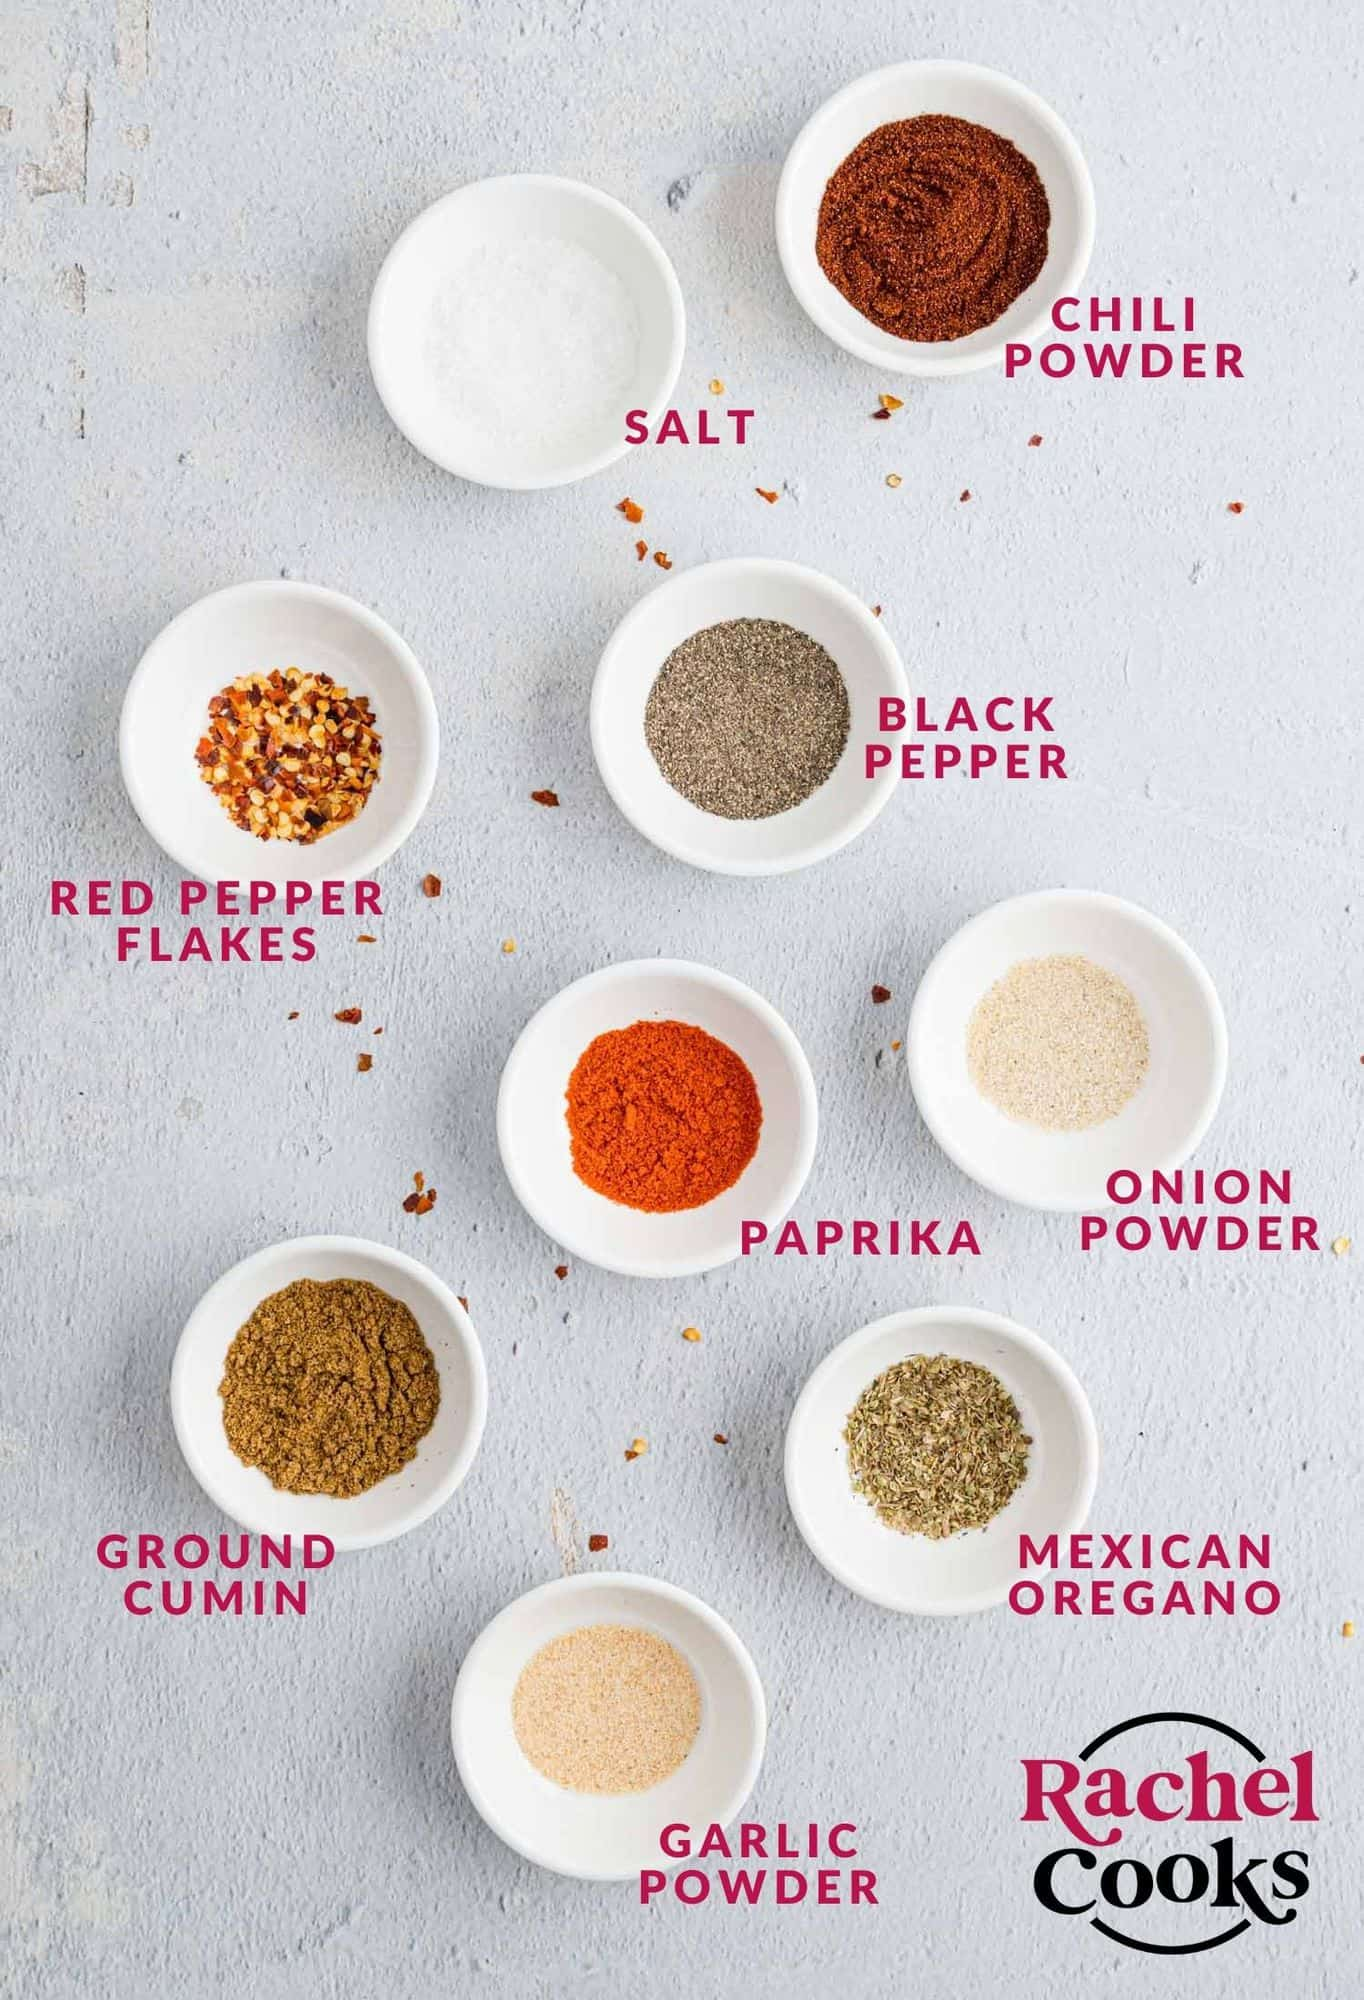 Ingredients needed for taco seasoning, with labels.